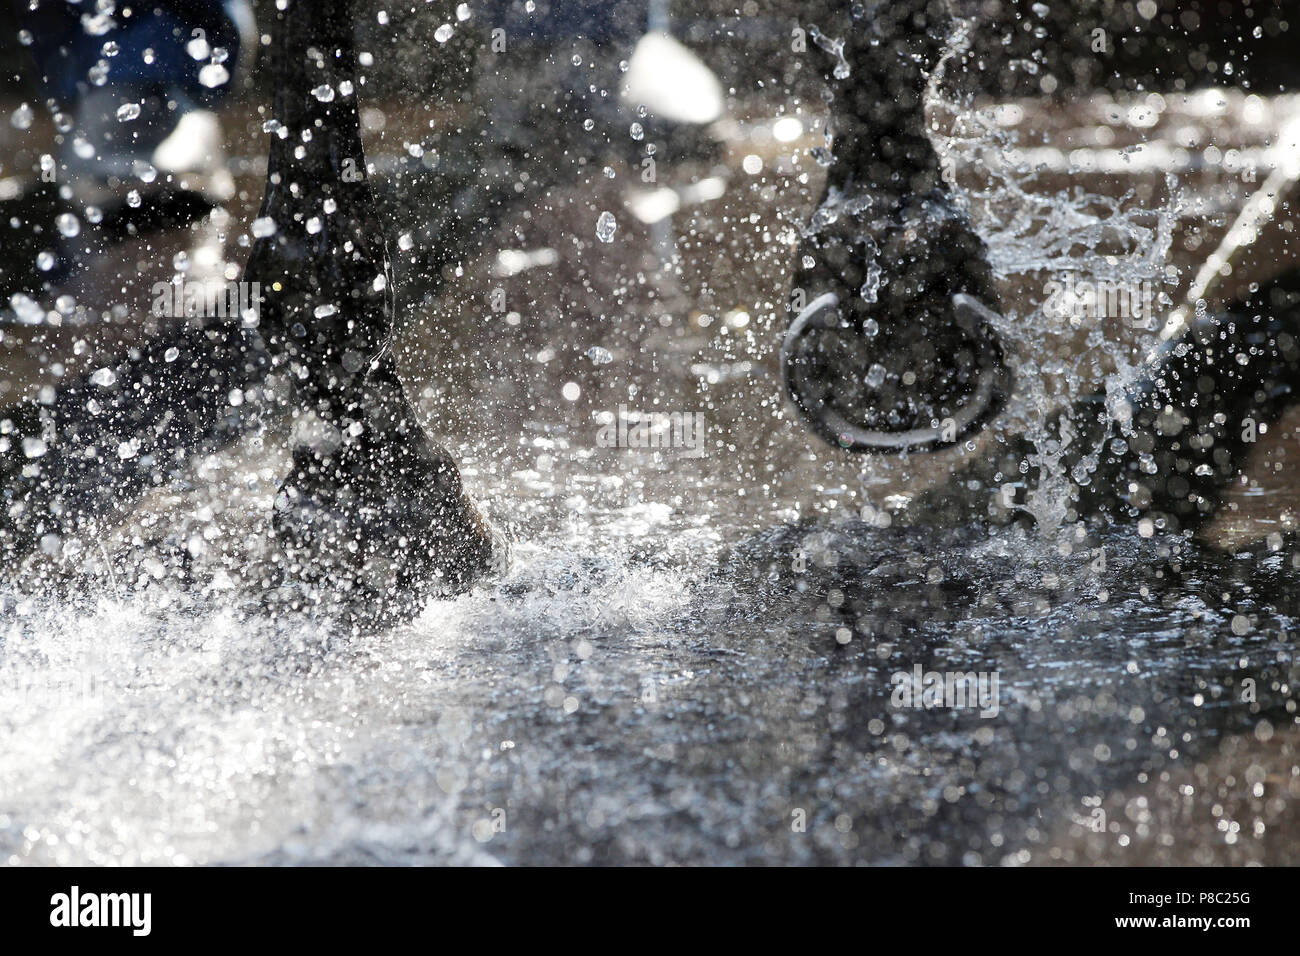 Iffezheim, hooves in the water - Stock Image